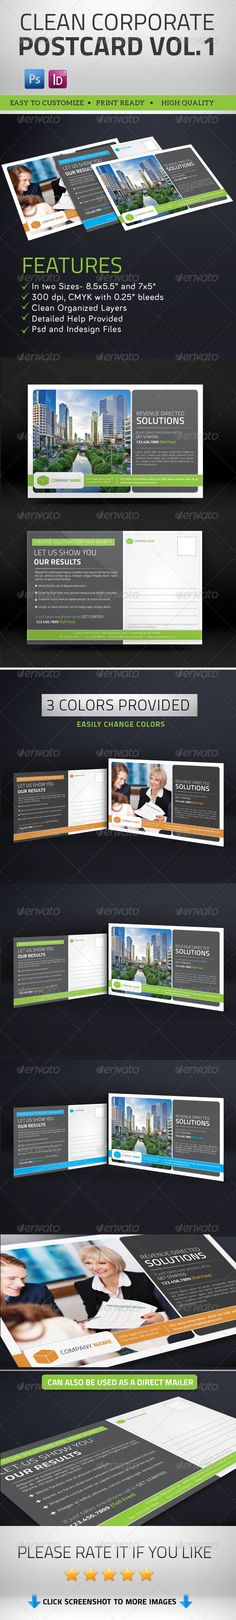 Buy Multipurpose Clean Corporate Postcard by pallabip on GraphicRiver. Multipurpose Clean Corporate Postcard and Direct Mailer =============================================================. Postcard Layout, Postcard Design, Psd Flyer Templates, Business Flyer Templates, Print Templates, Graphic Design Tips, Tool Design, Print Design, Direct Mail Design